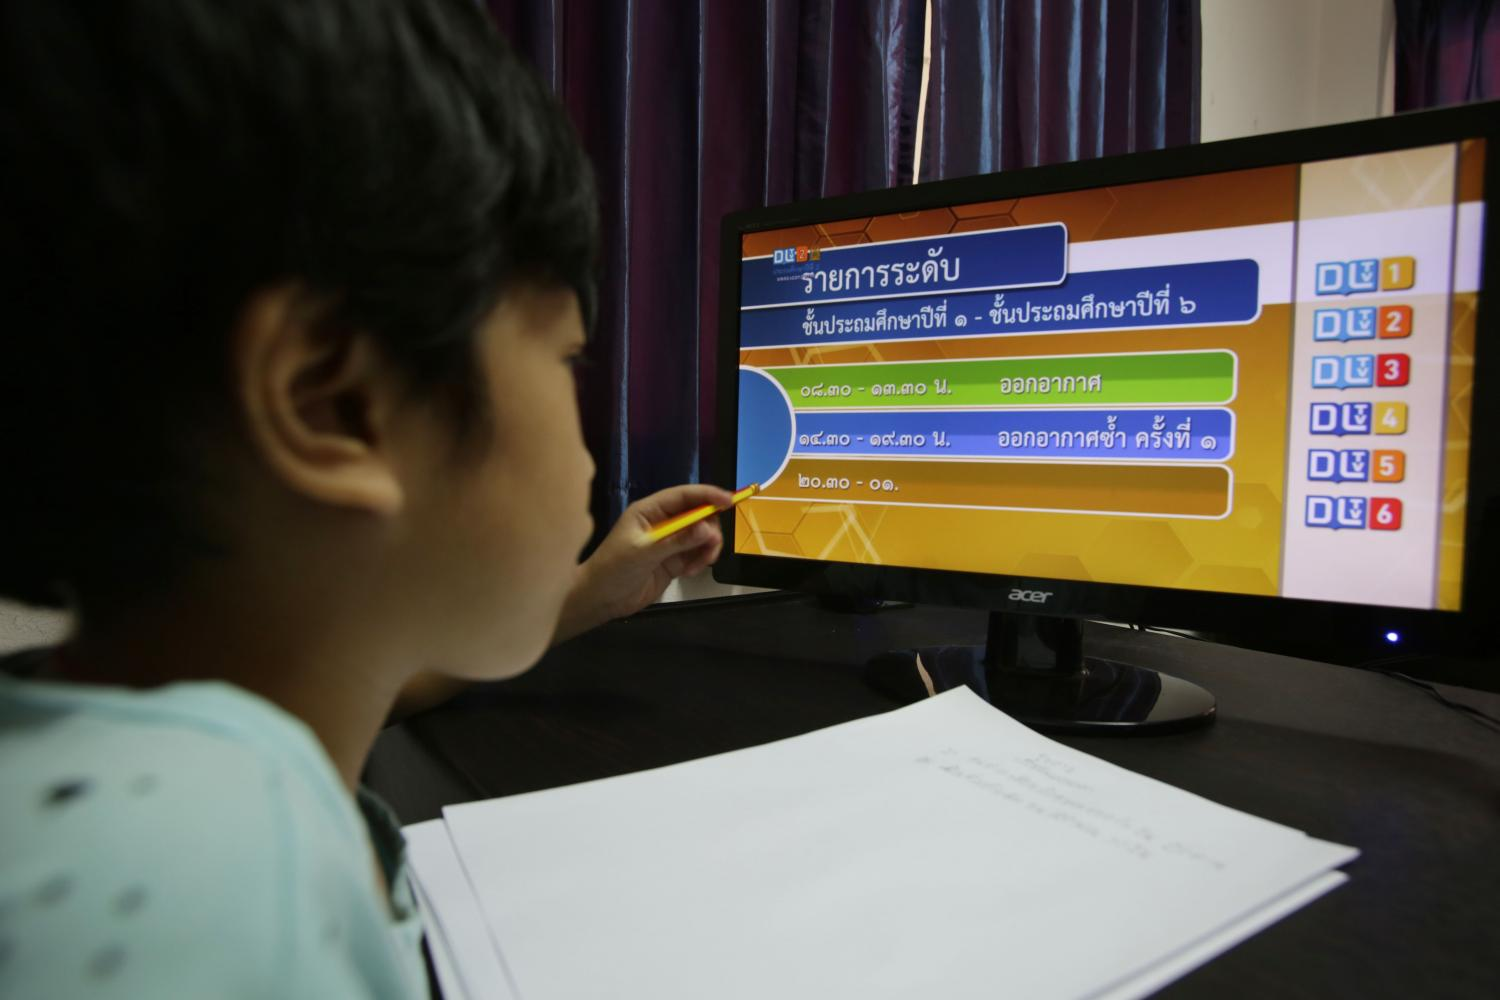 A young student takes part in an online learning trial which kicked off on May 18. The system is riddled with shortcomings, exposing the wide disparity between rich and poor kids.(Photo by Apichit Jinakul)